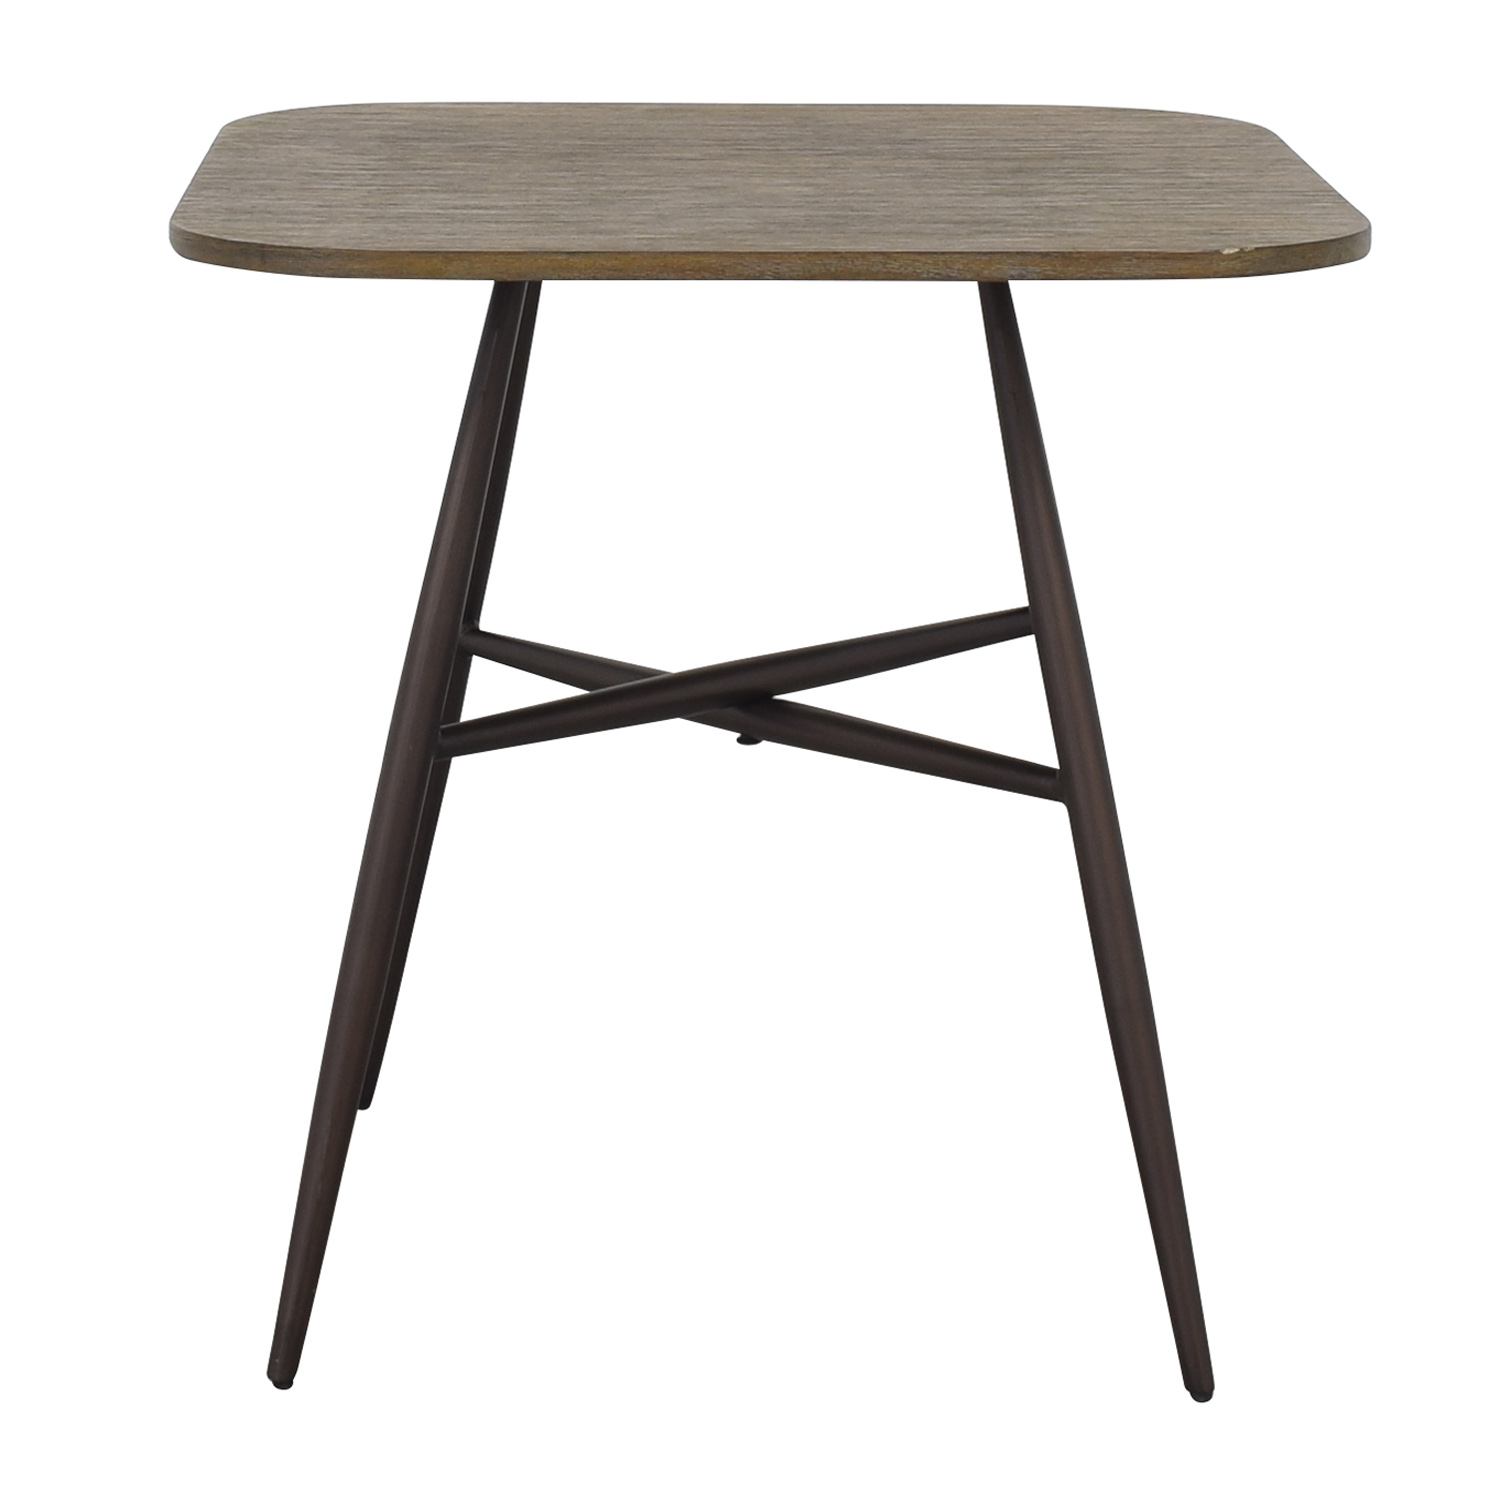 E&E Co E&E Co Small Wood & Metal Dining Table for sale